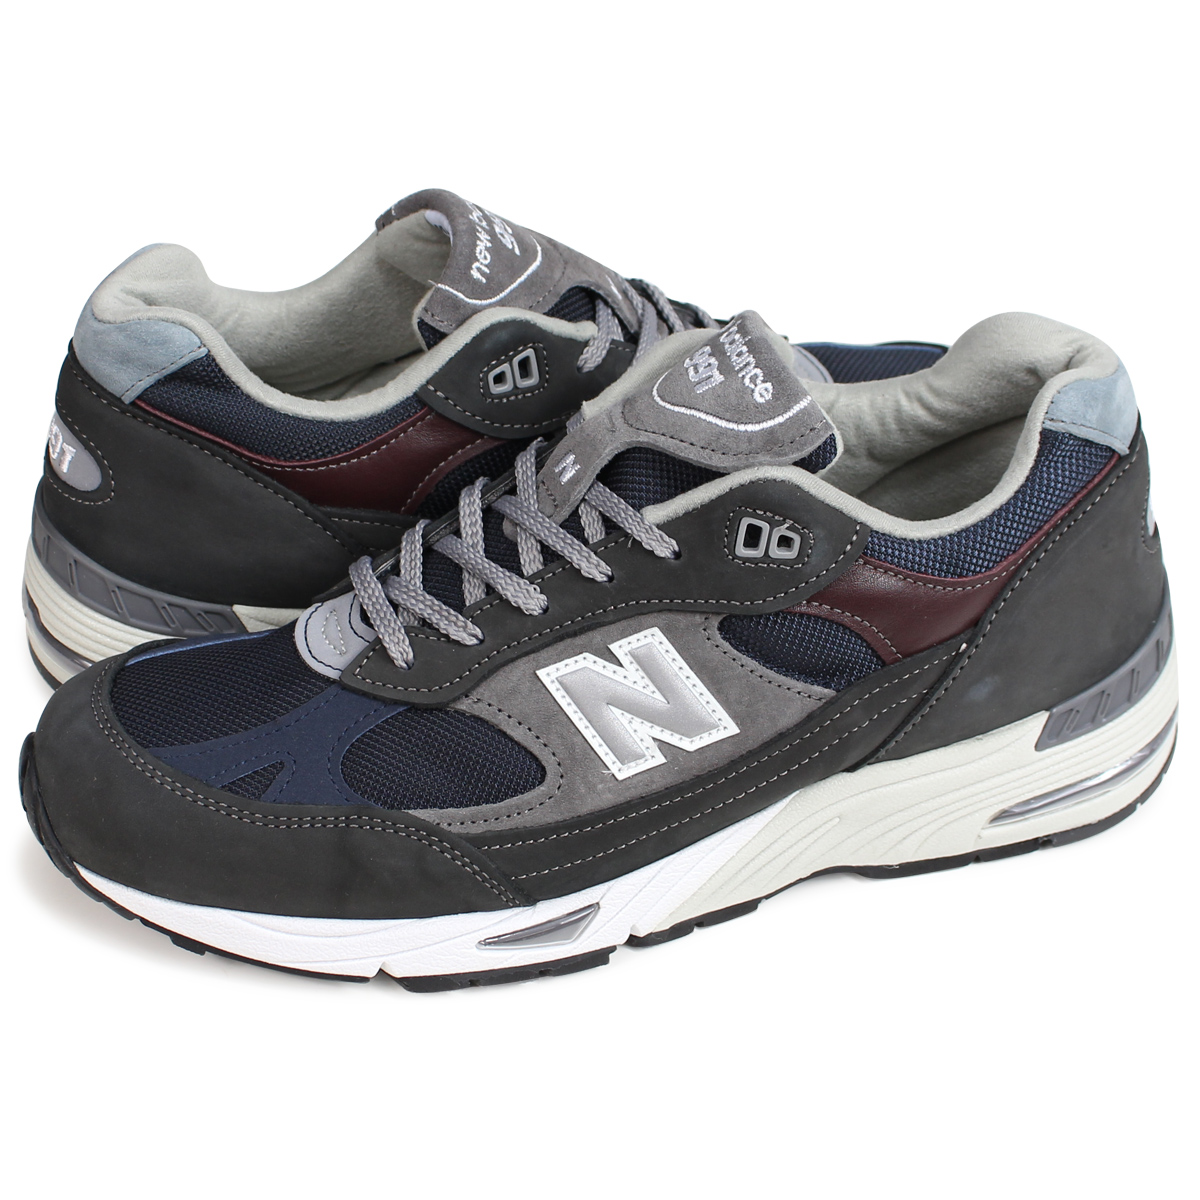 photos officielles 7eccb d73fd new balance M991GNN MADE IN UK New Balance 991 men's sneakers D Wise gray